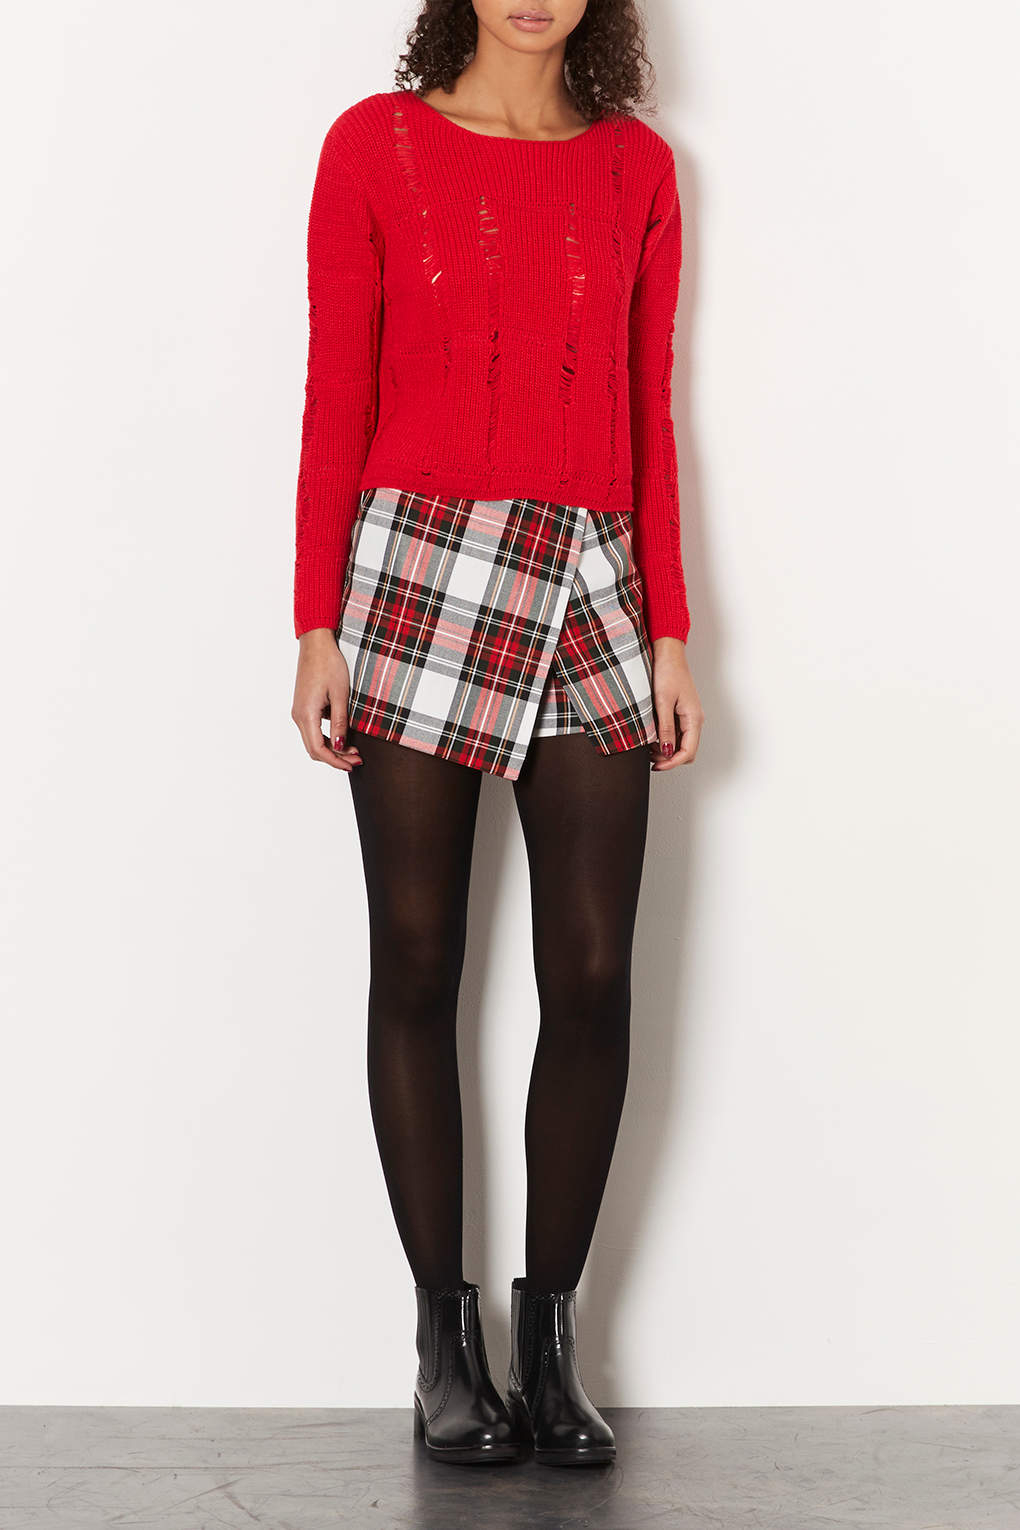 Lyst Topshop Petite Knitted Ladder Stitch Jumper In Red